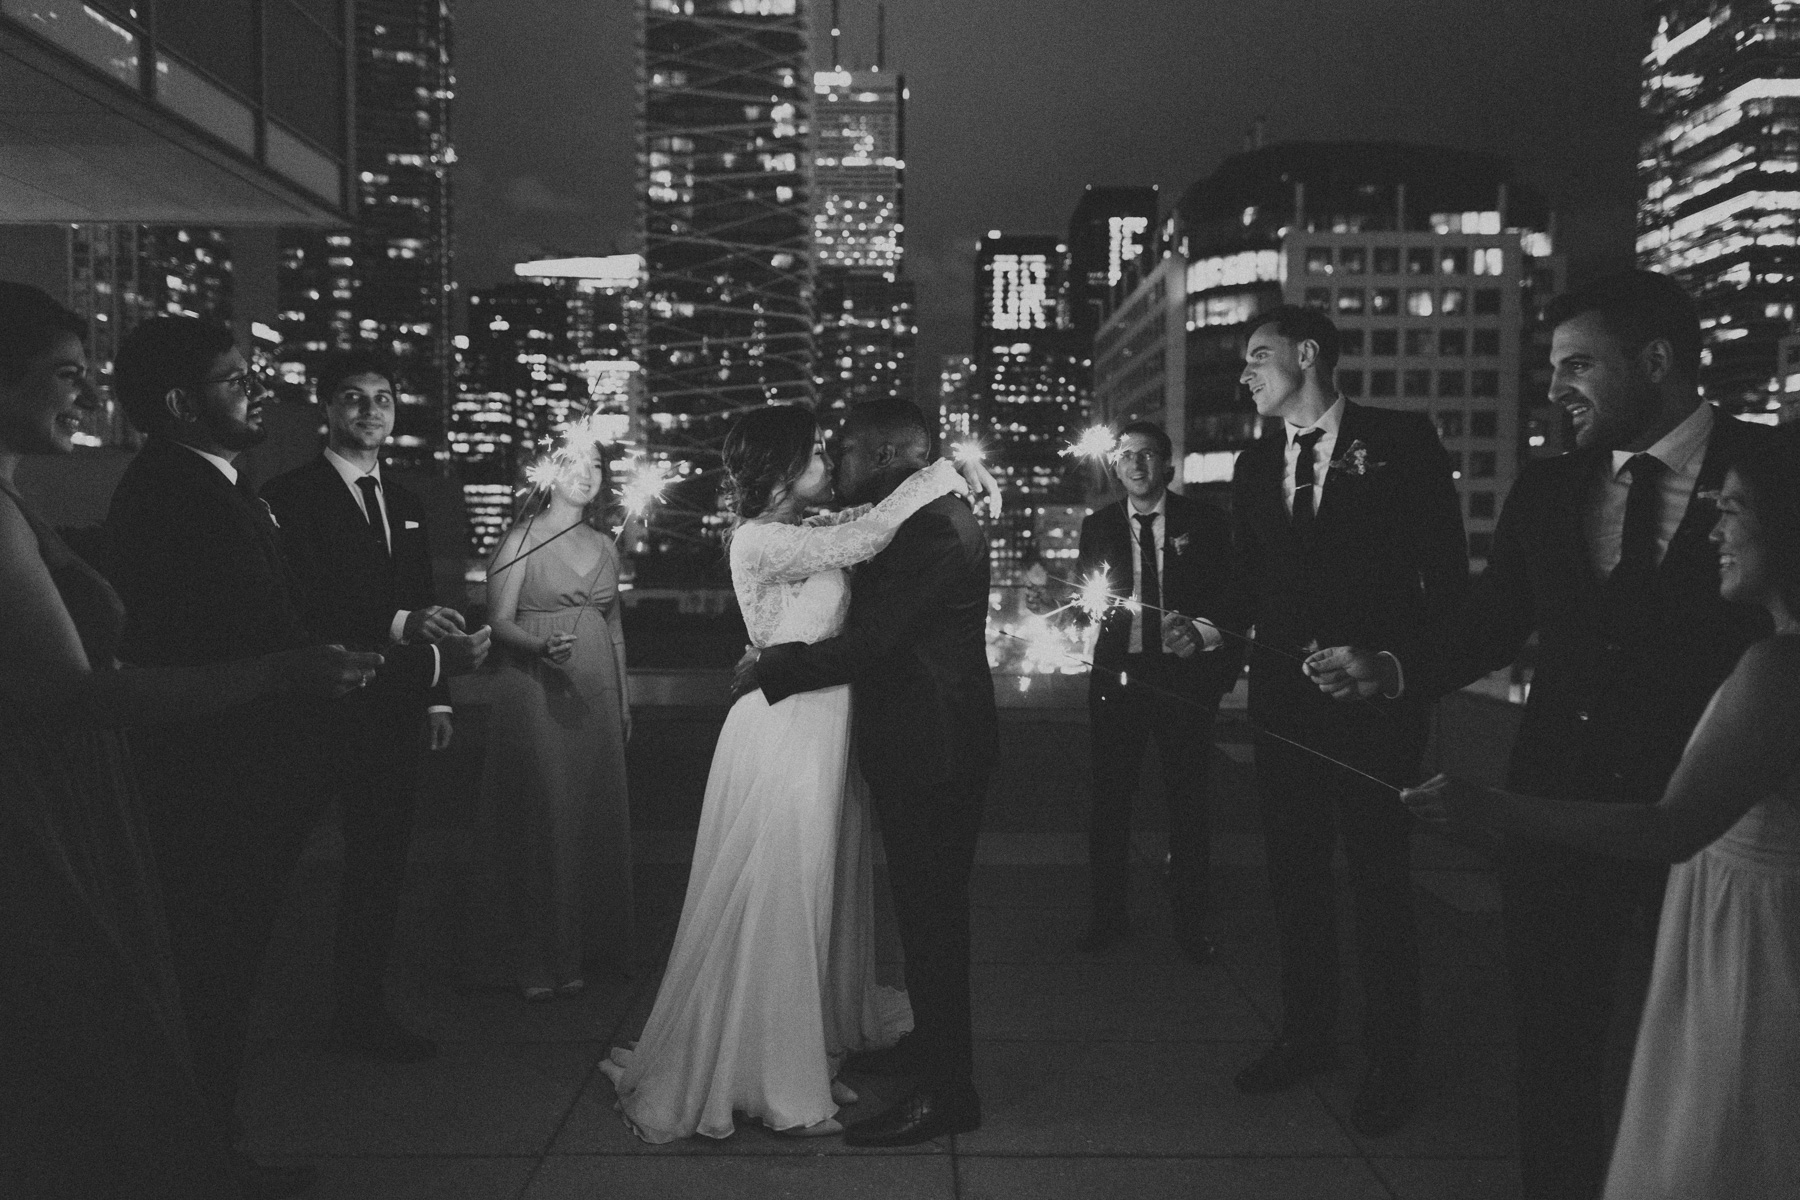 Malaparte-wedding-photography-Toronto-by-Sam-Wong-of-Artanis-Collective-Mary-Anne-Bourne_056.jpg